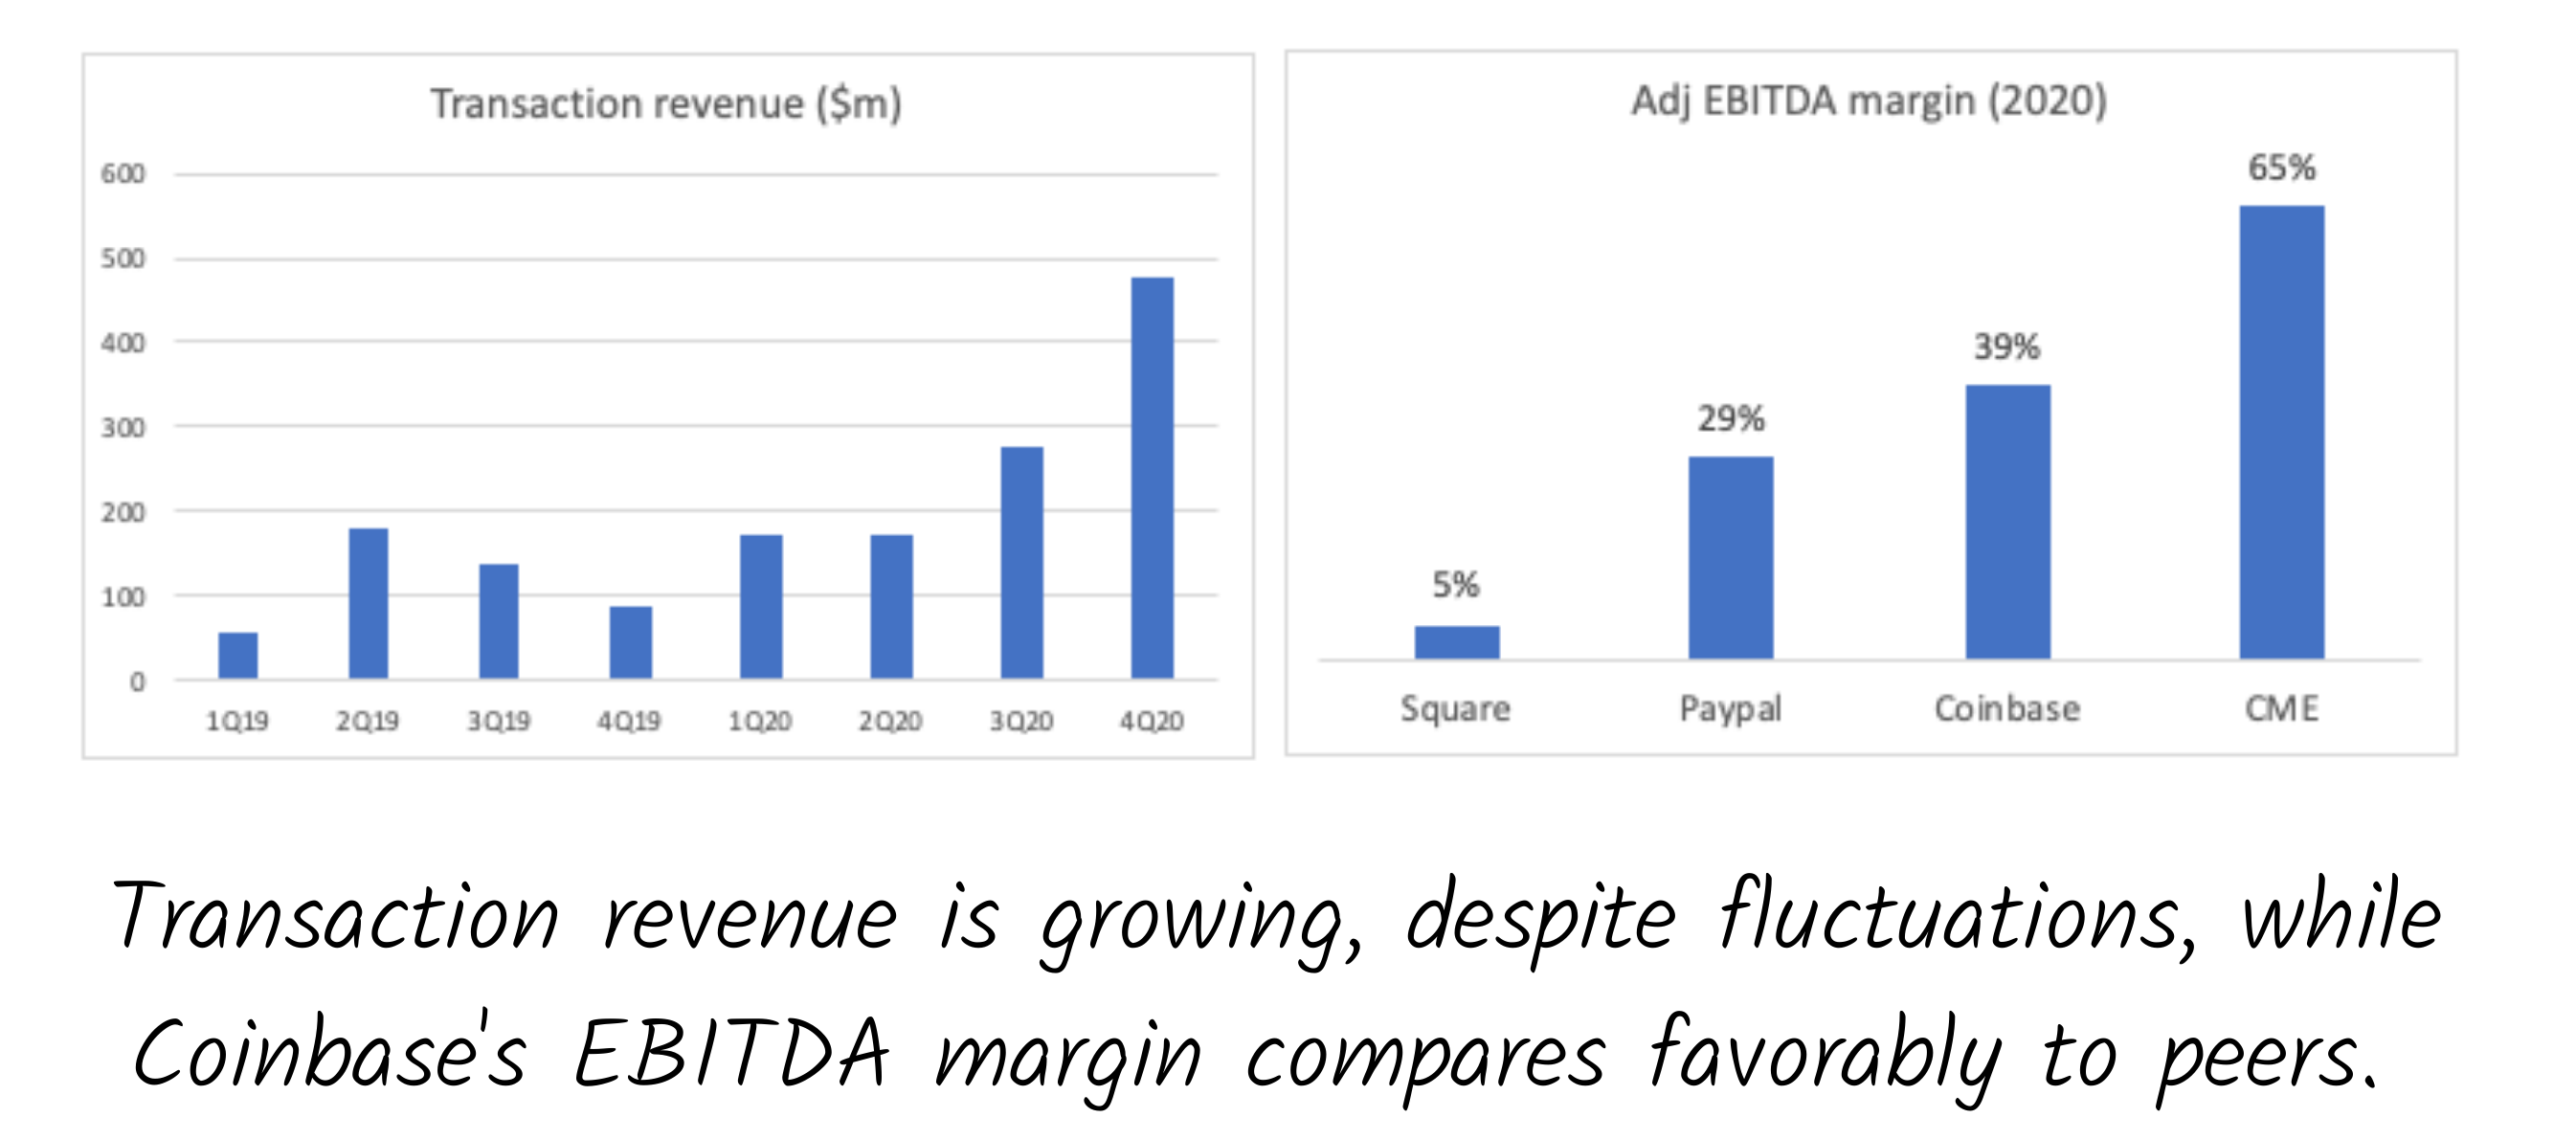 Data from Coinbase S-1, company filings